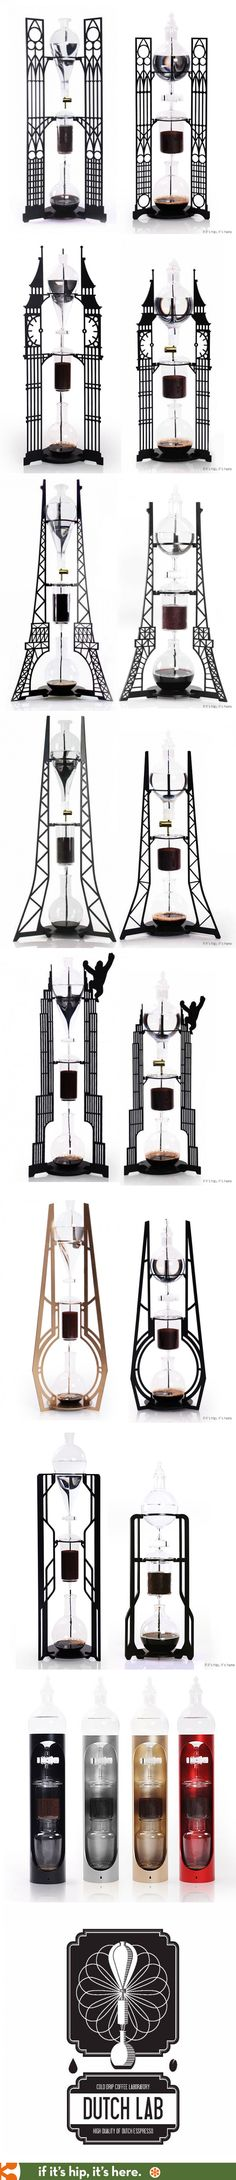 These Architecturally and Movie-inspired Cold Drip Brew Coffee Makers are like Amazing Functional Sculptures.